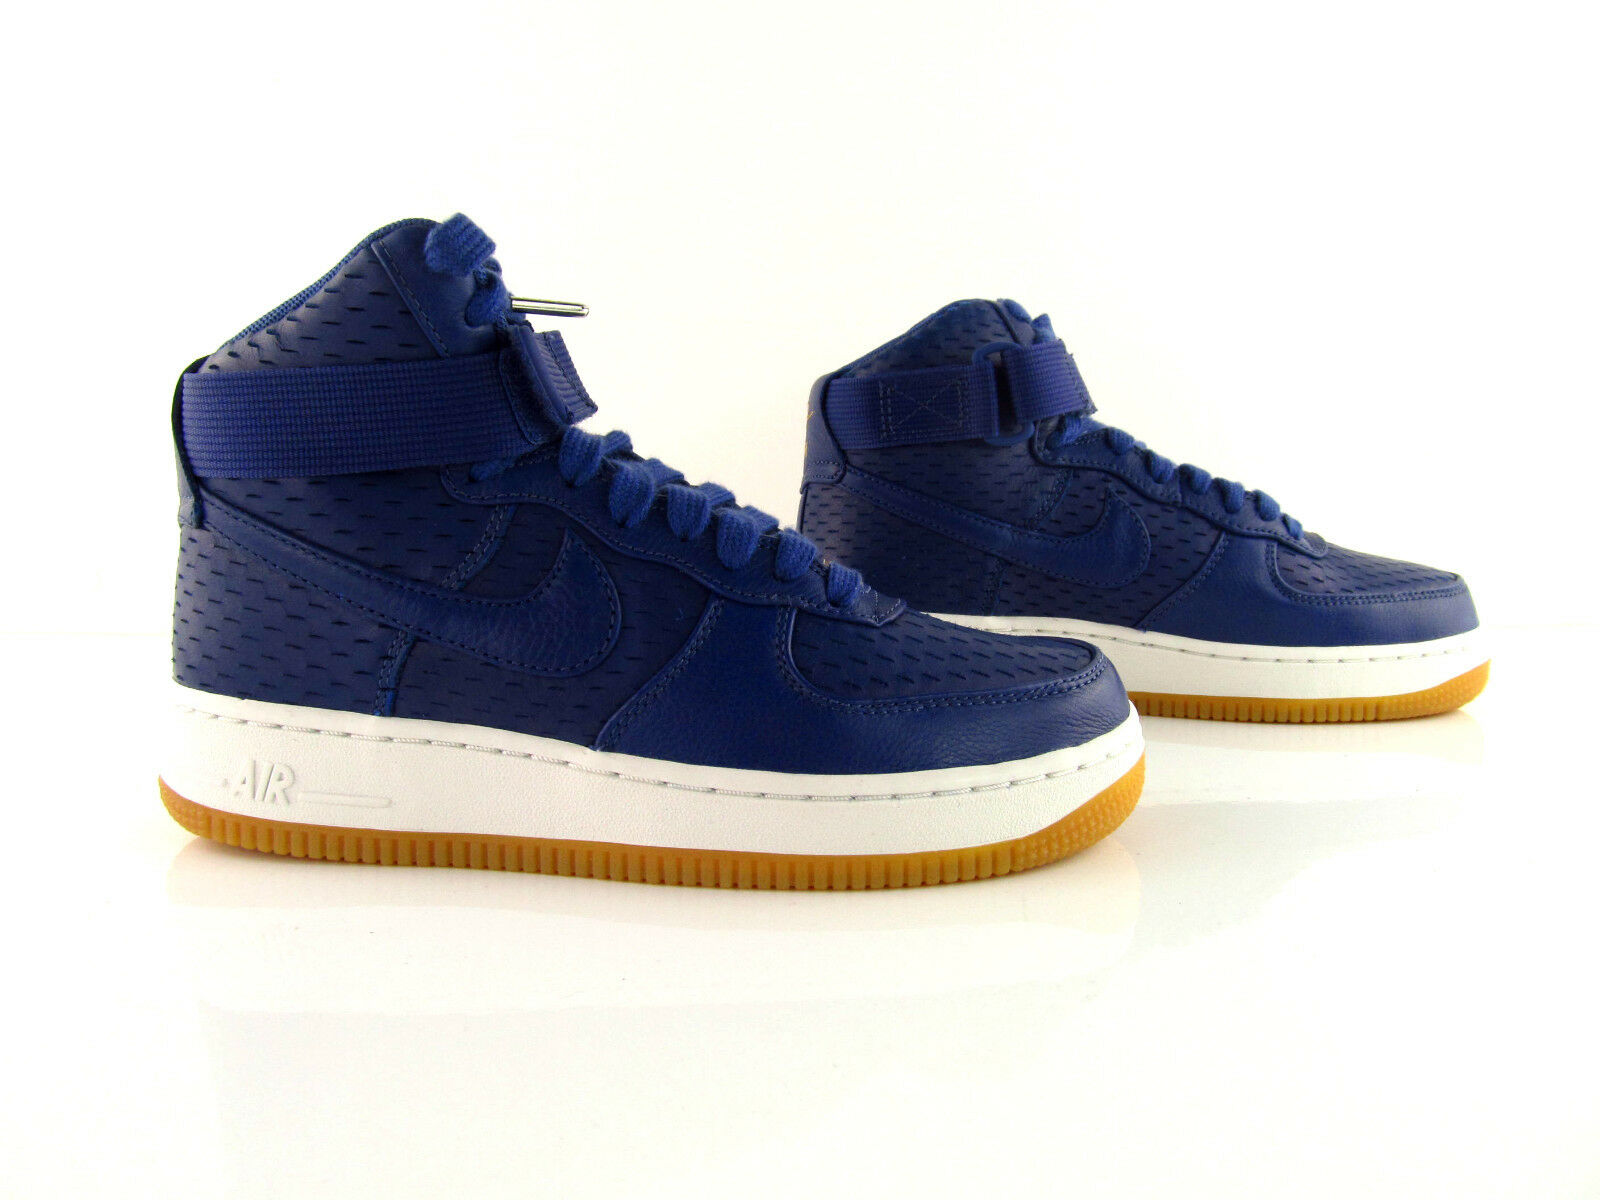 Nike Air Premium Force 1 HI PRM Premium Air Dark Purple Dust New US_6.5 EUR 37.5 c716d8